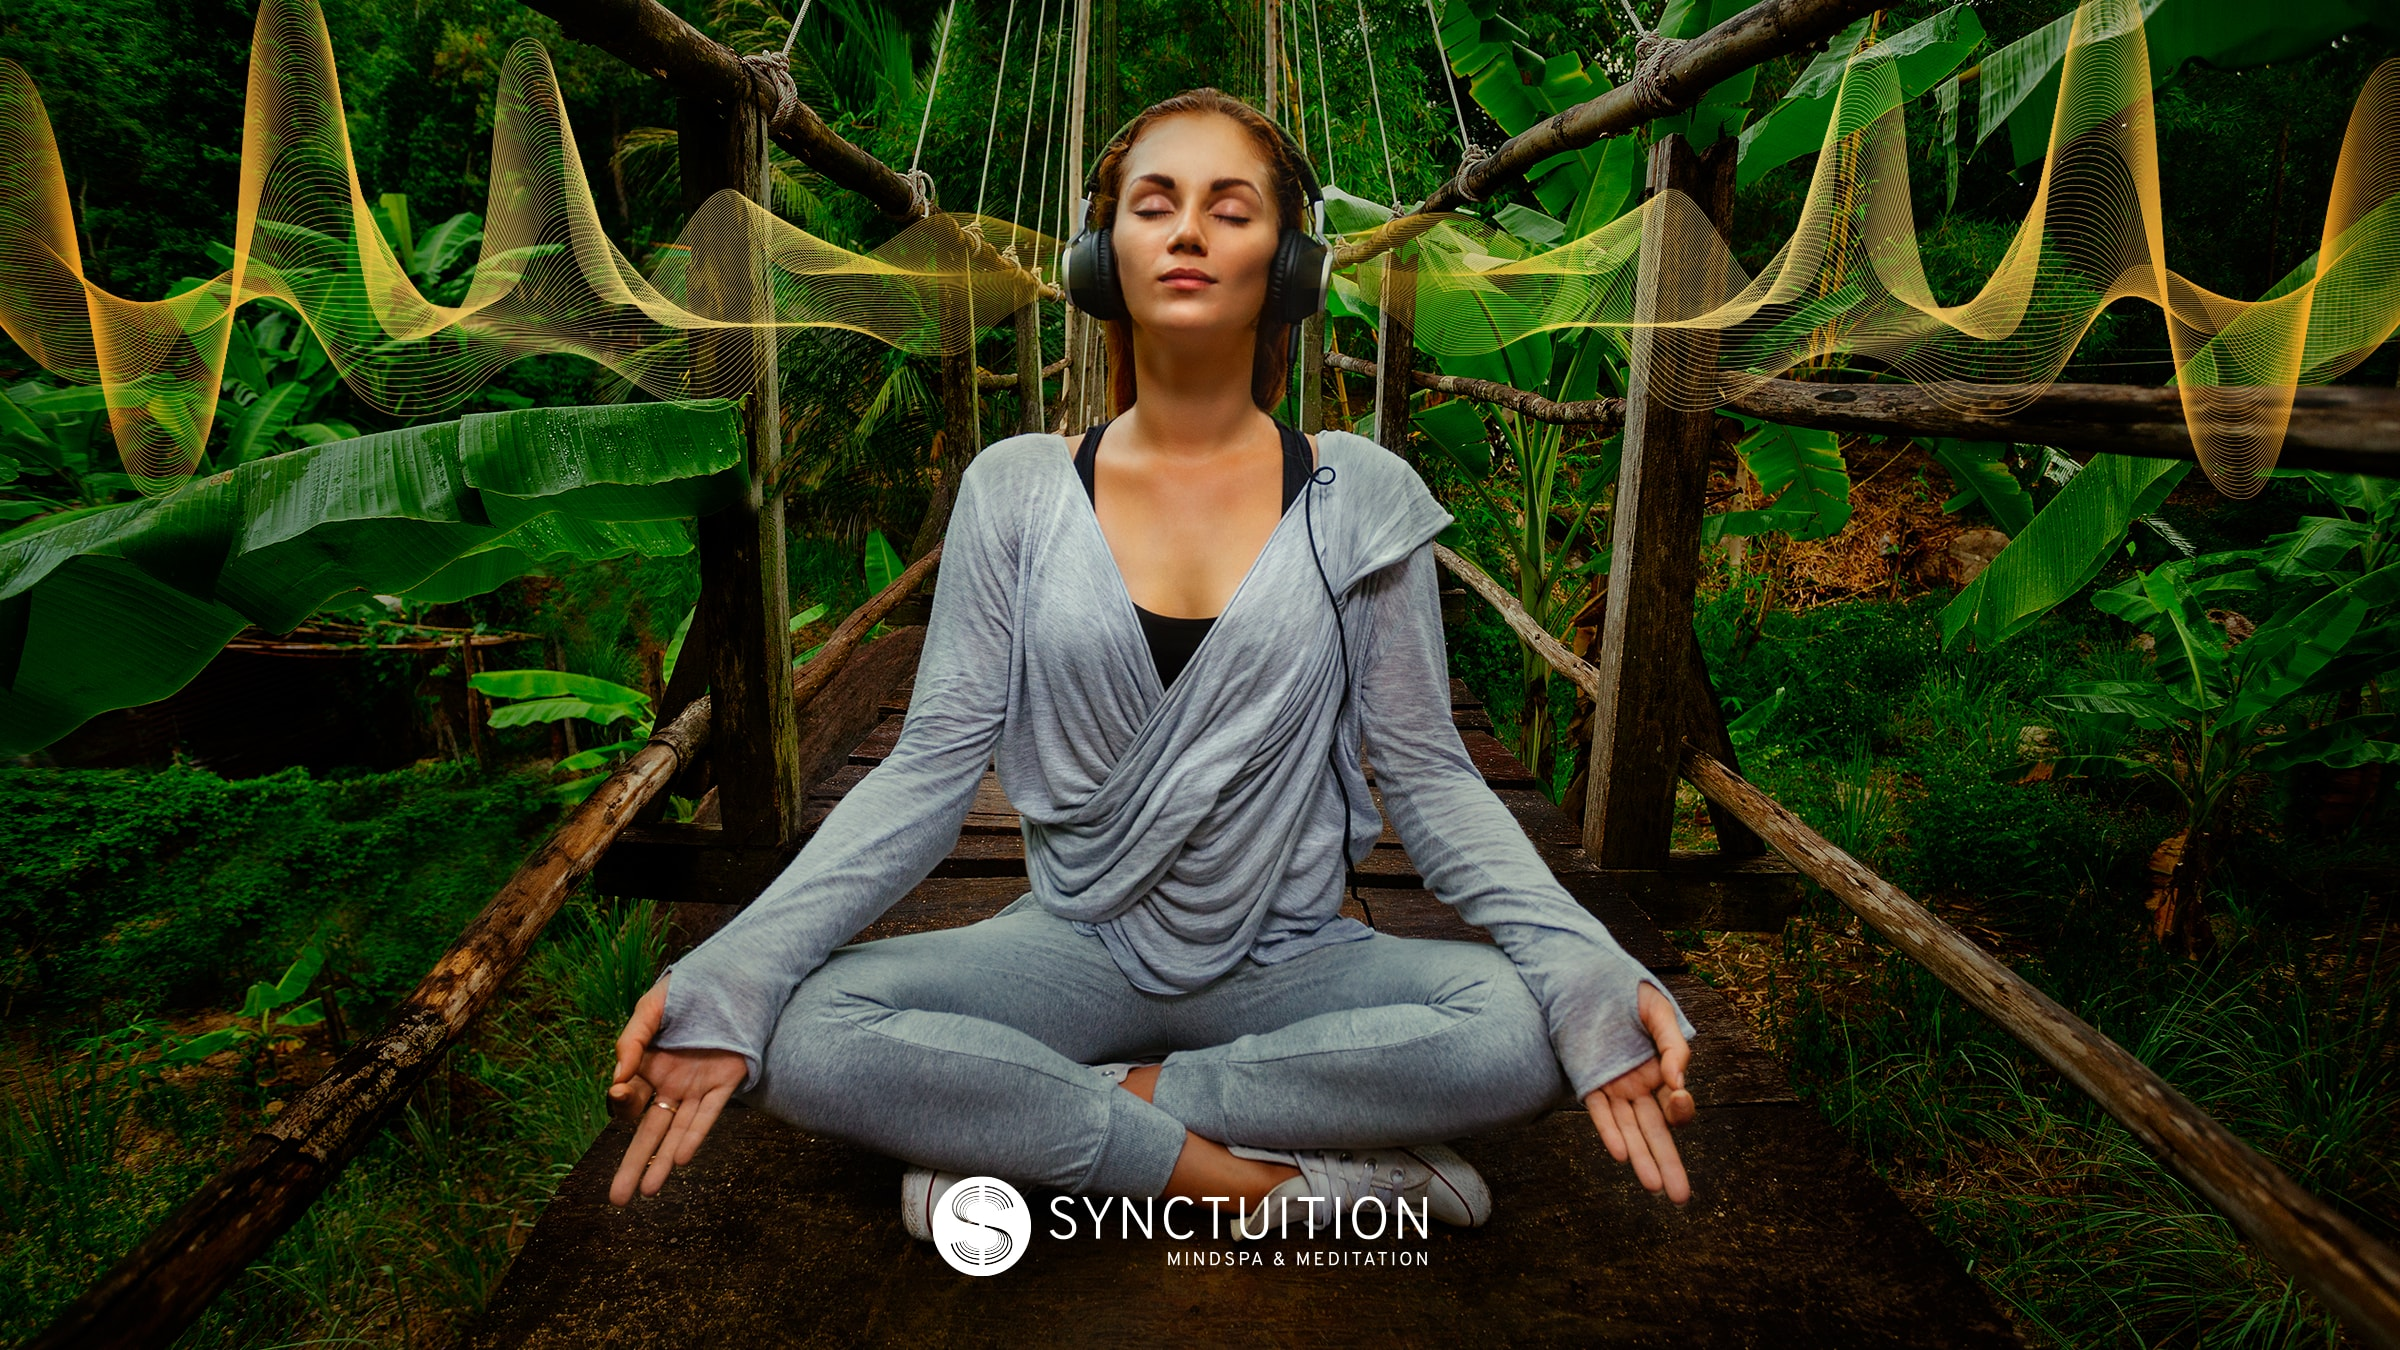 Synctuition available now in 223 location worldwide!